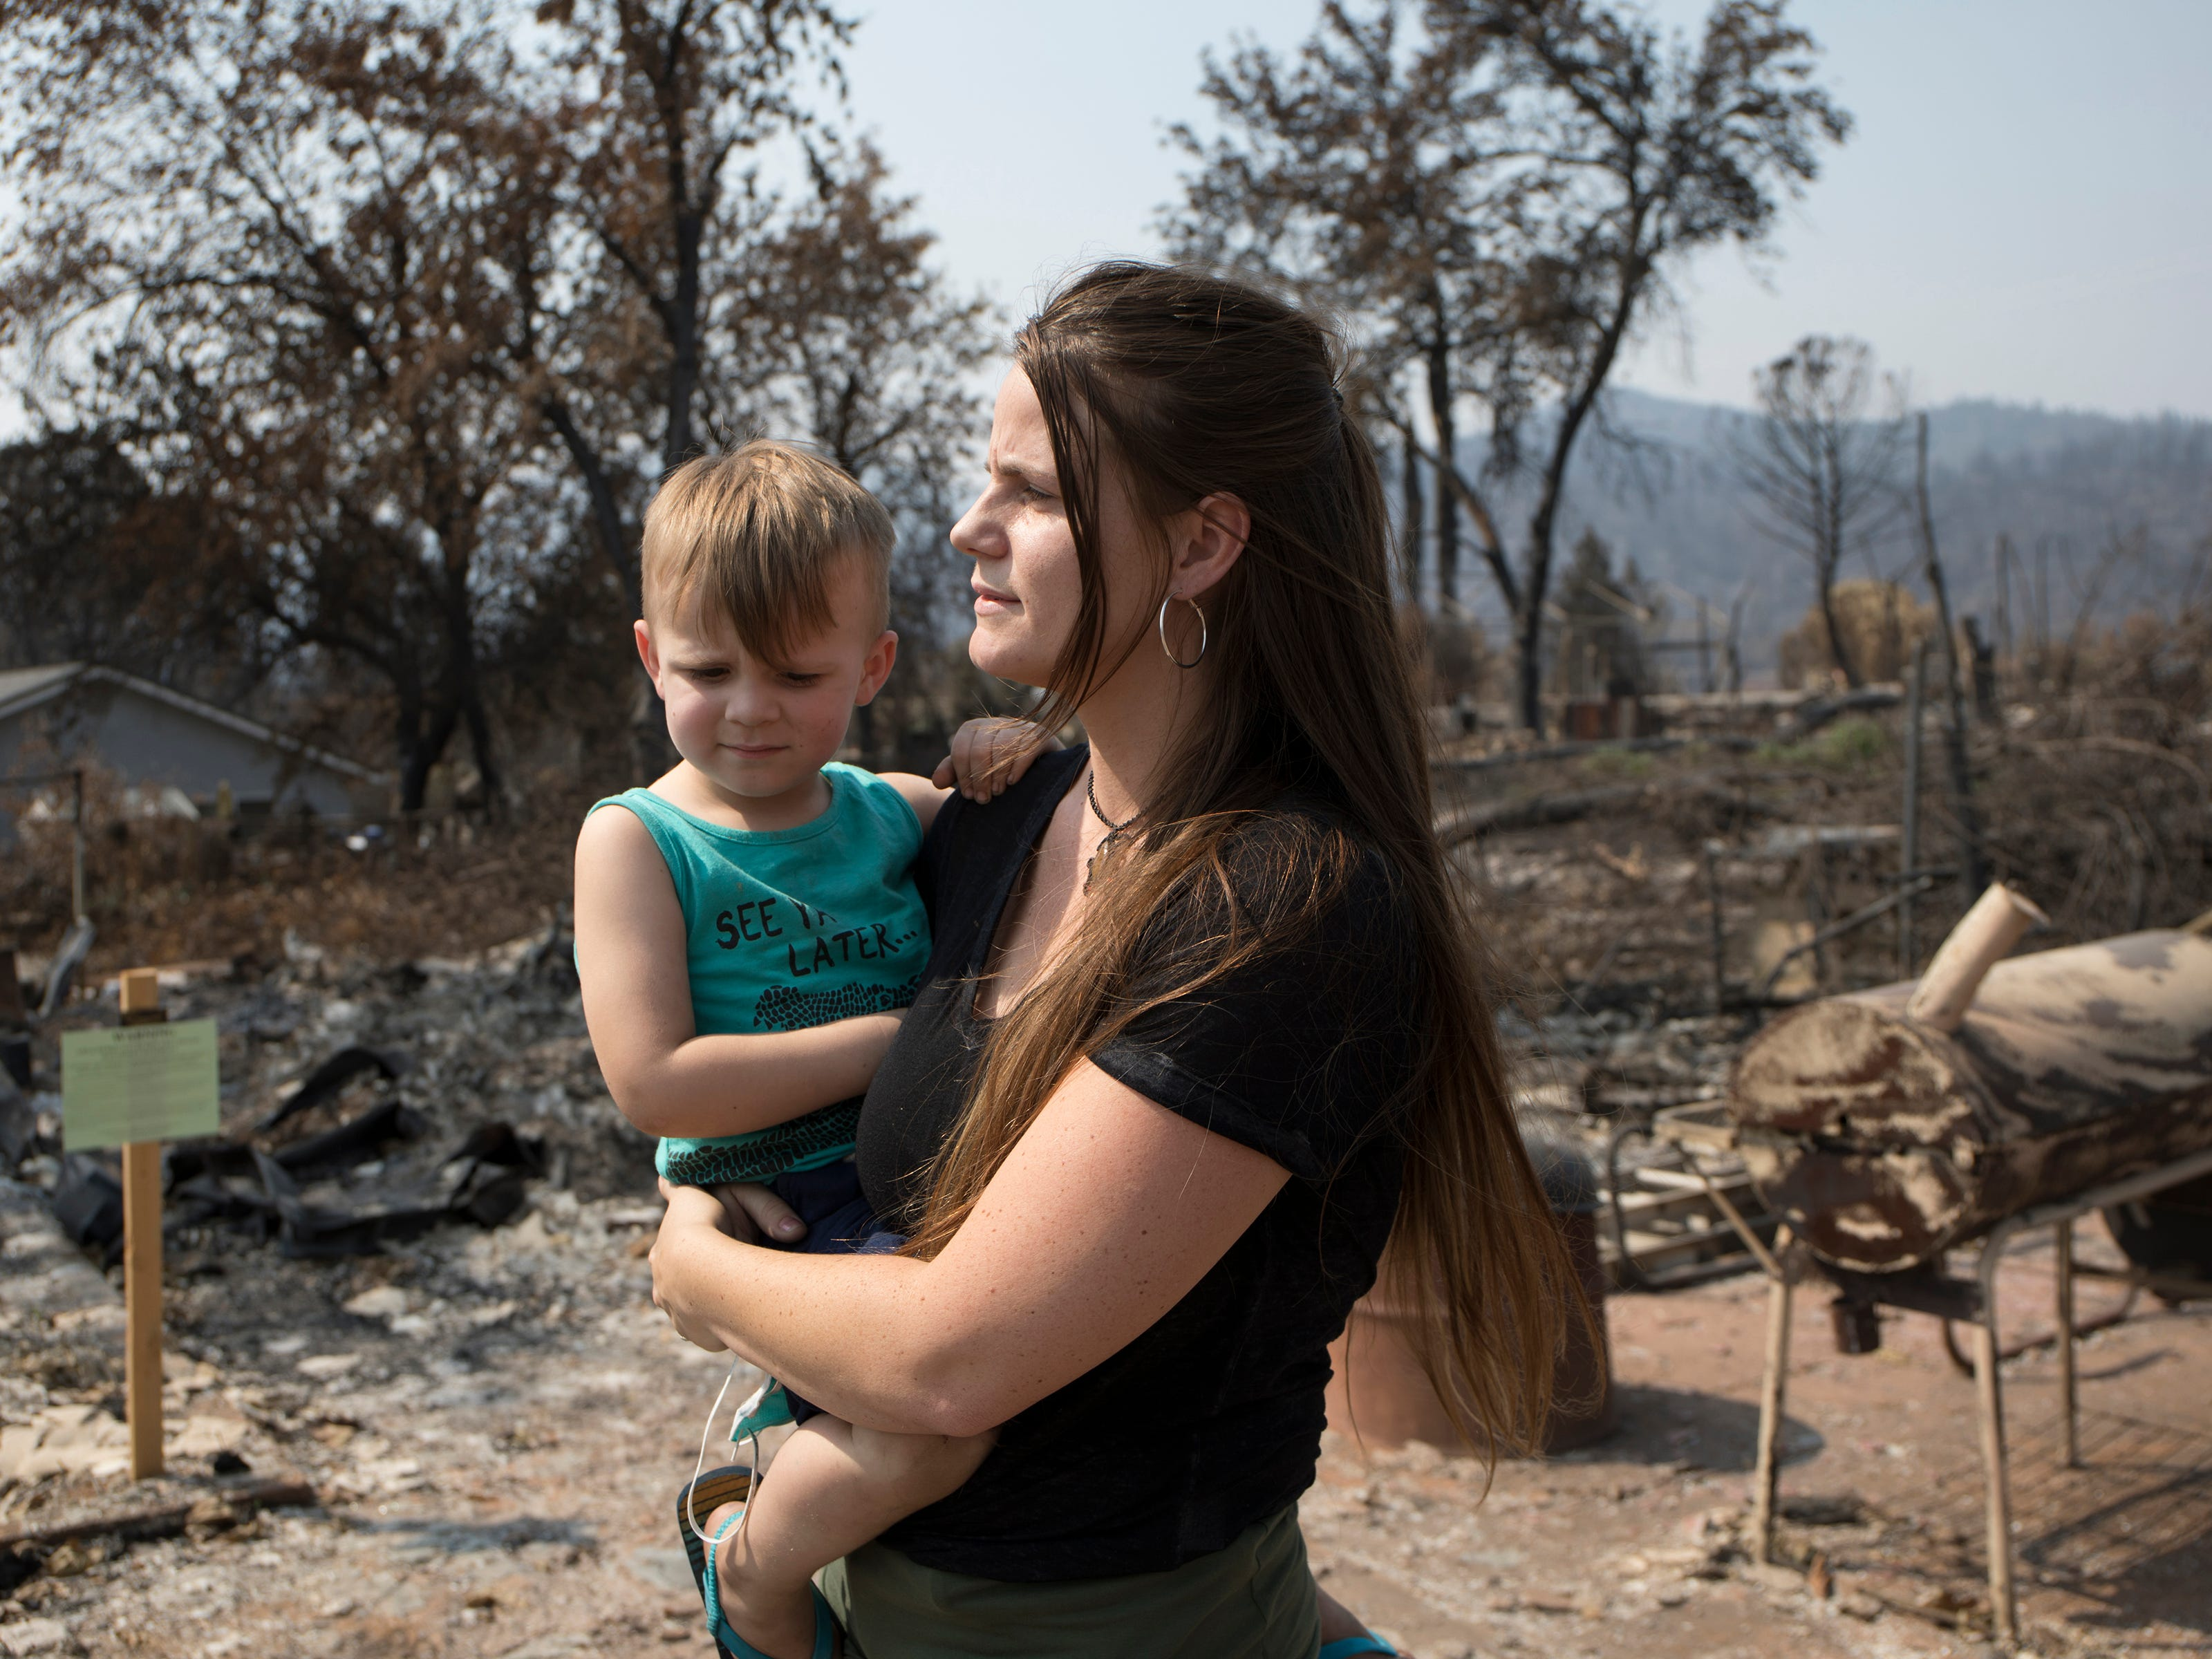 Survivors look over what is left following the Carr fire which burned down all but 2 homes in Keswick, Calif., Tuesday, August 21, 2018.